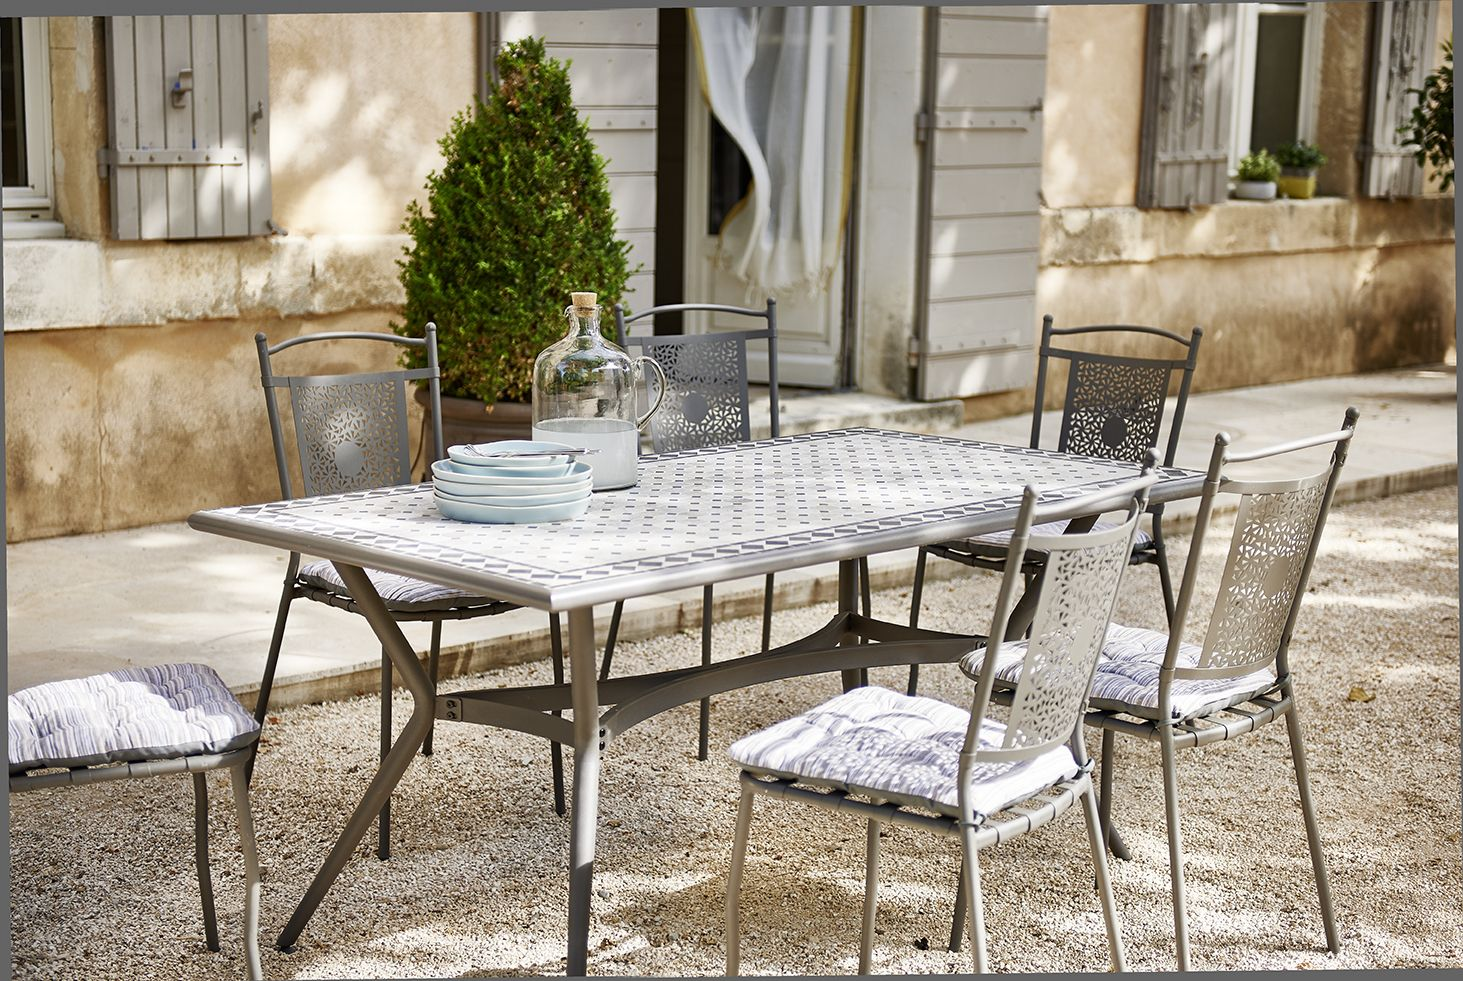 Epingle Par Intermarche Sur Plein Air 2017 Mobilier Jardin